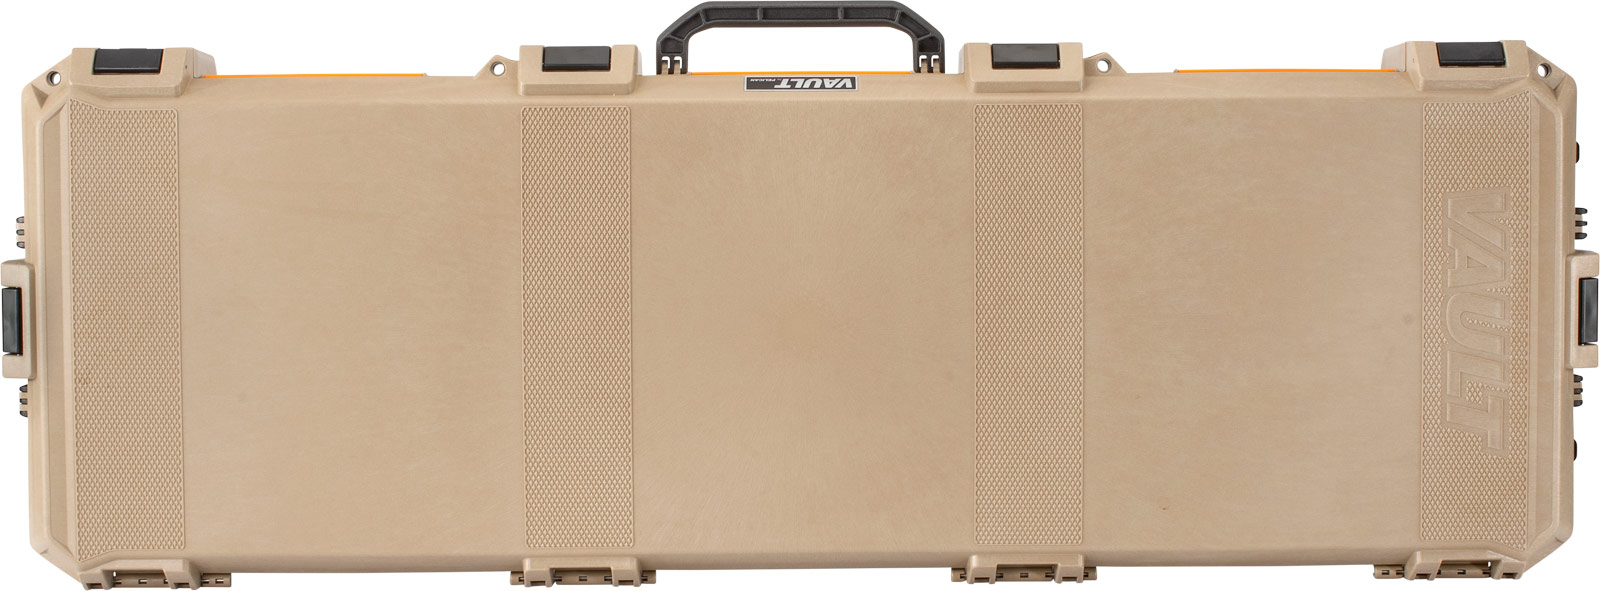 pelican vault v800 tan double firearm case